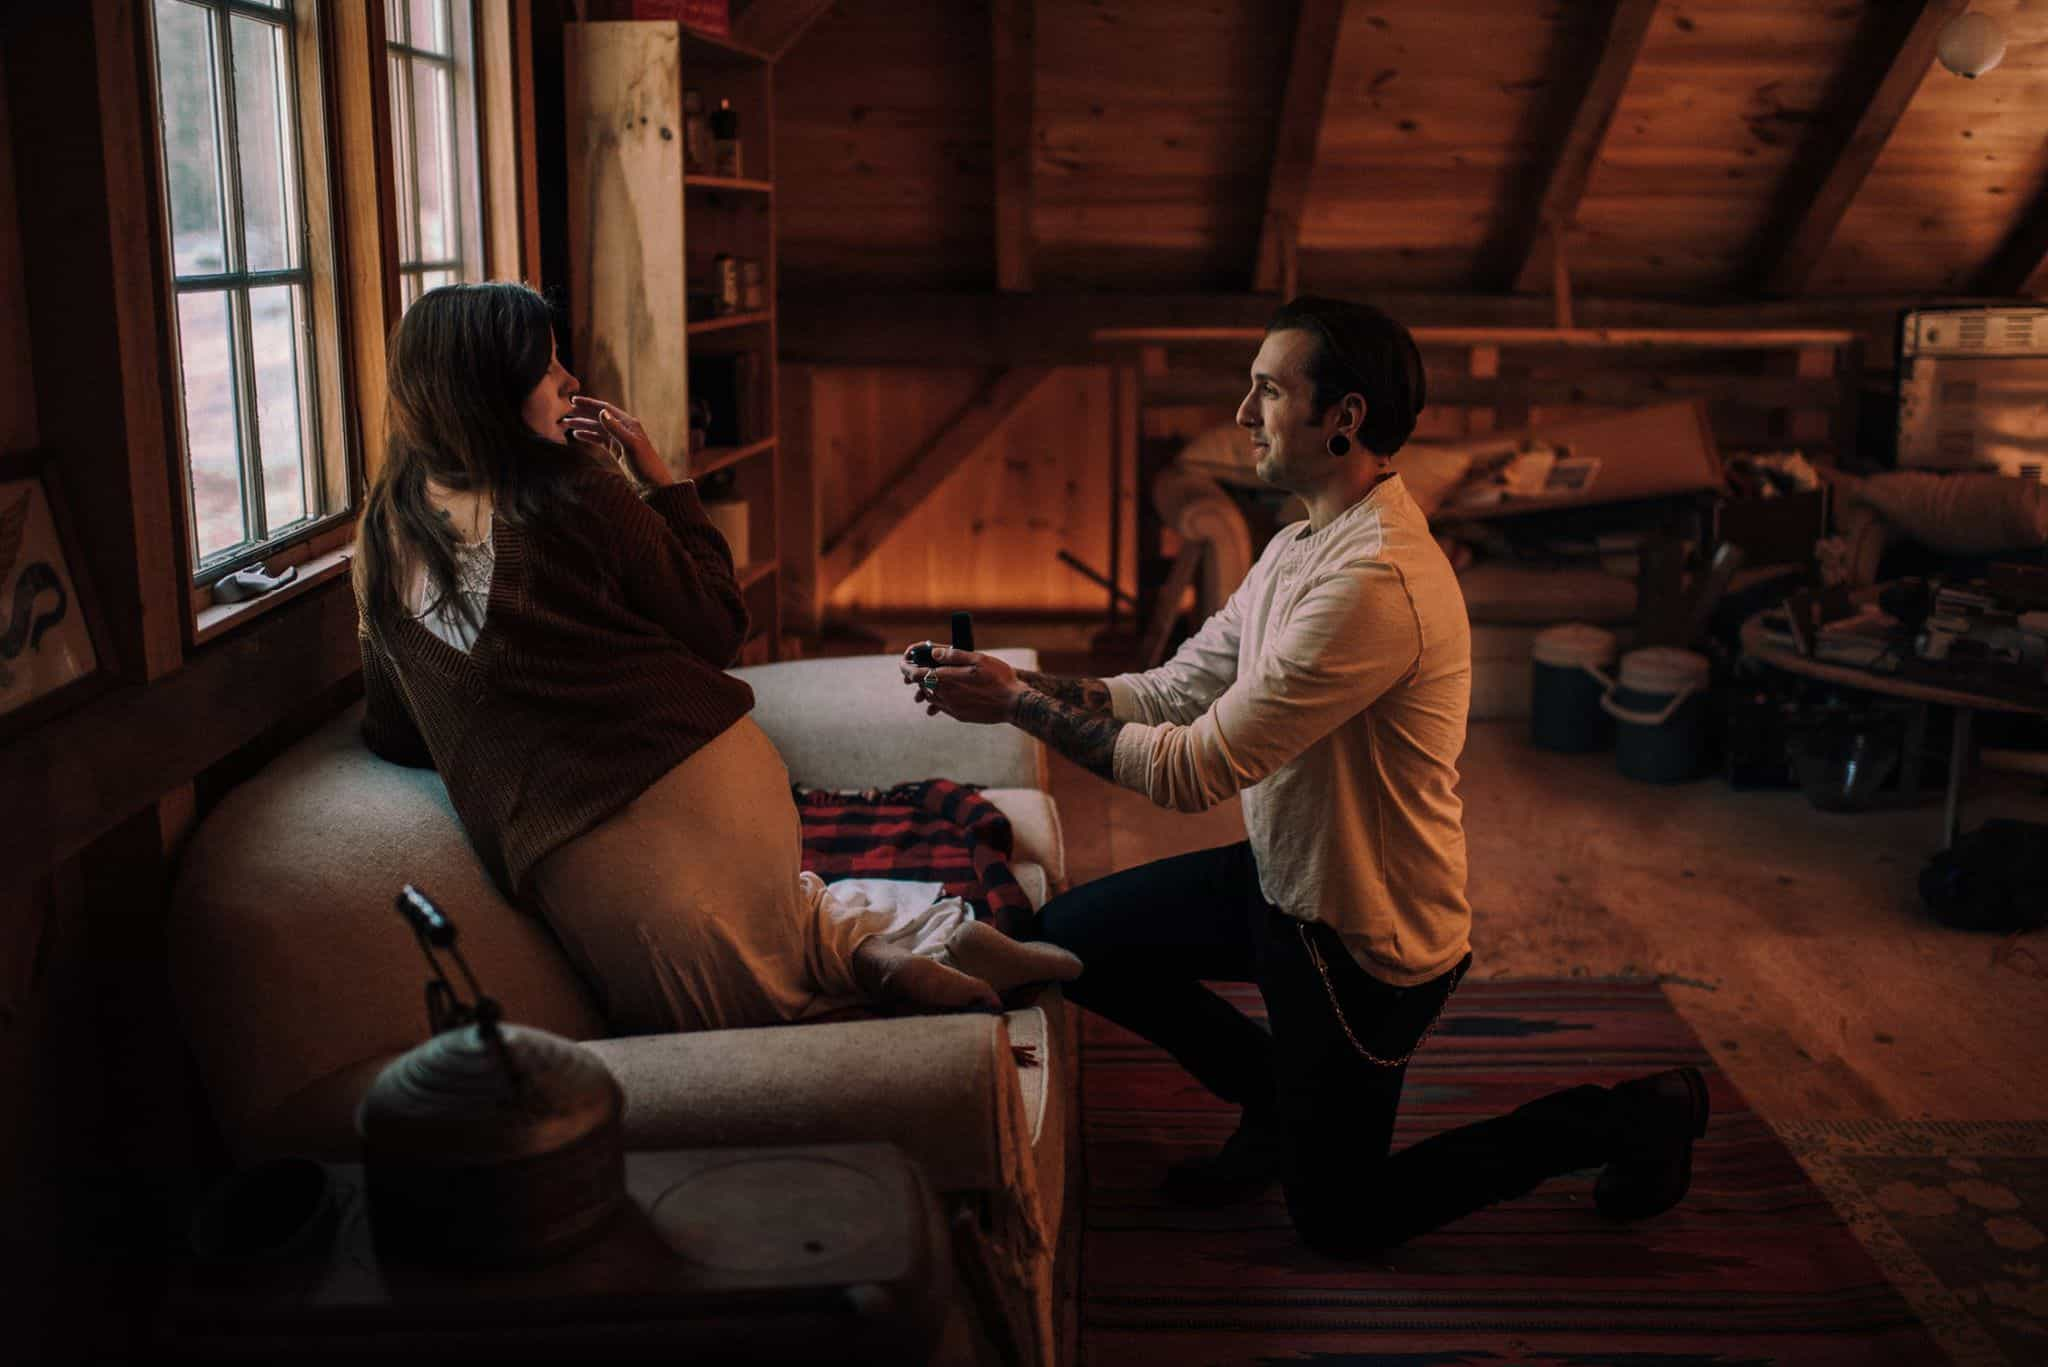 A man proposing to a surprised woman in a cabin